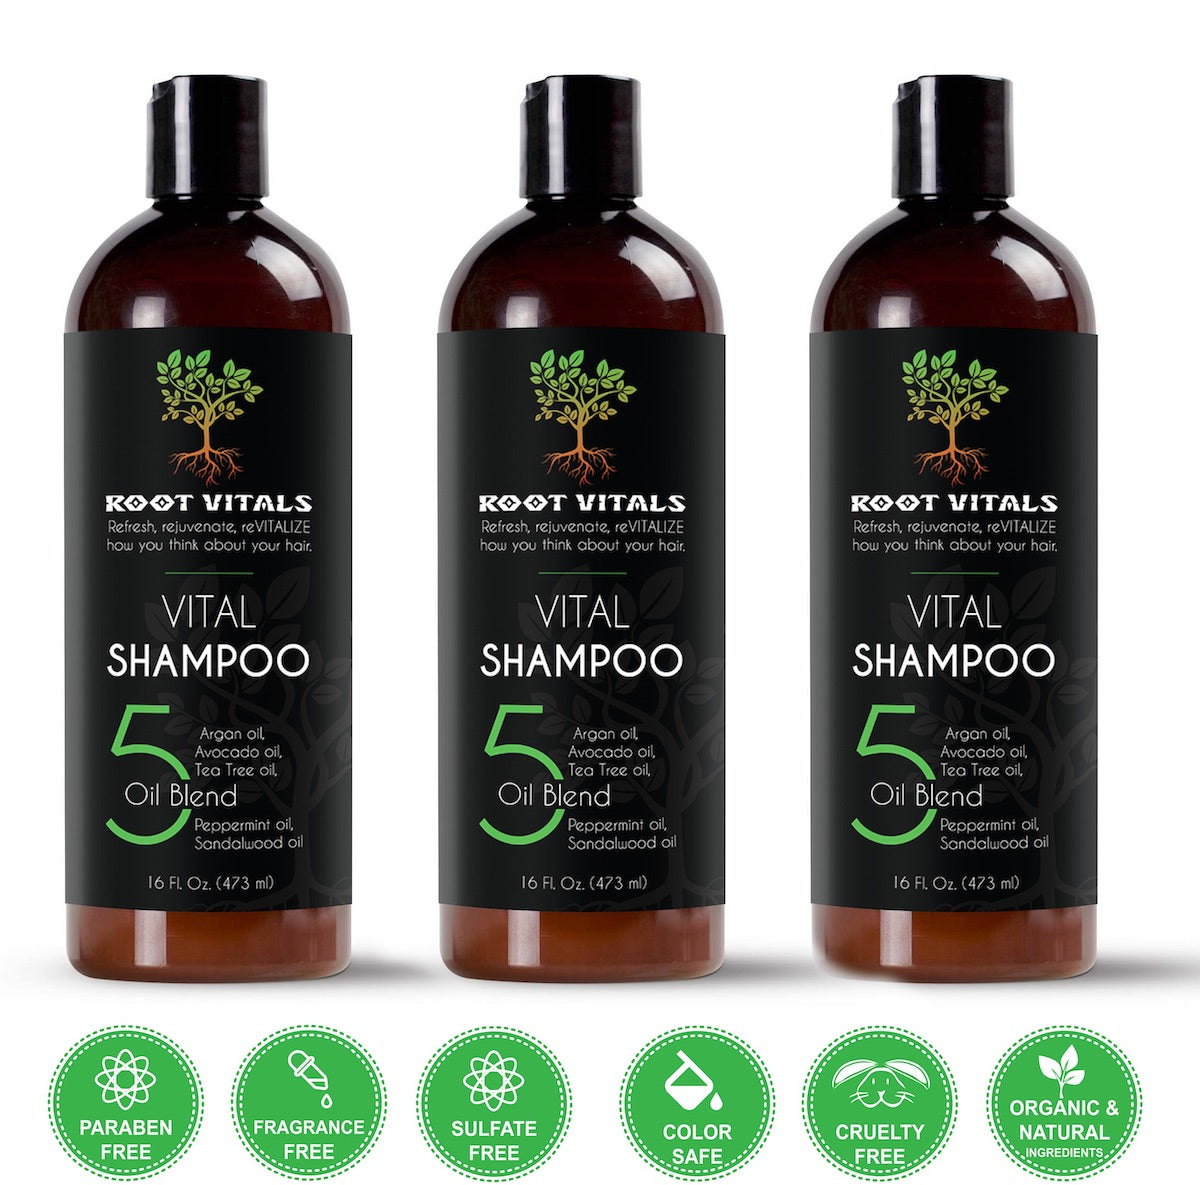 Vital Shampoo for Natural Hair Growth and Shampoo for thinning hair  3 bottles